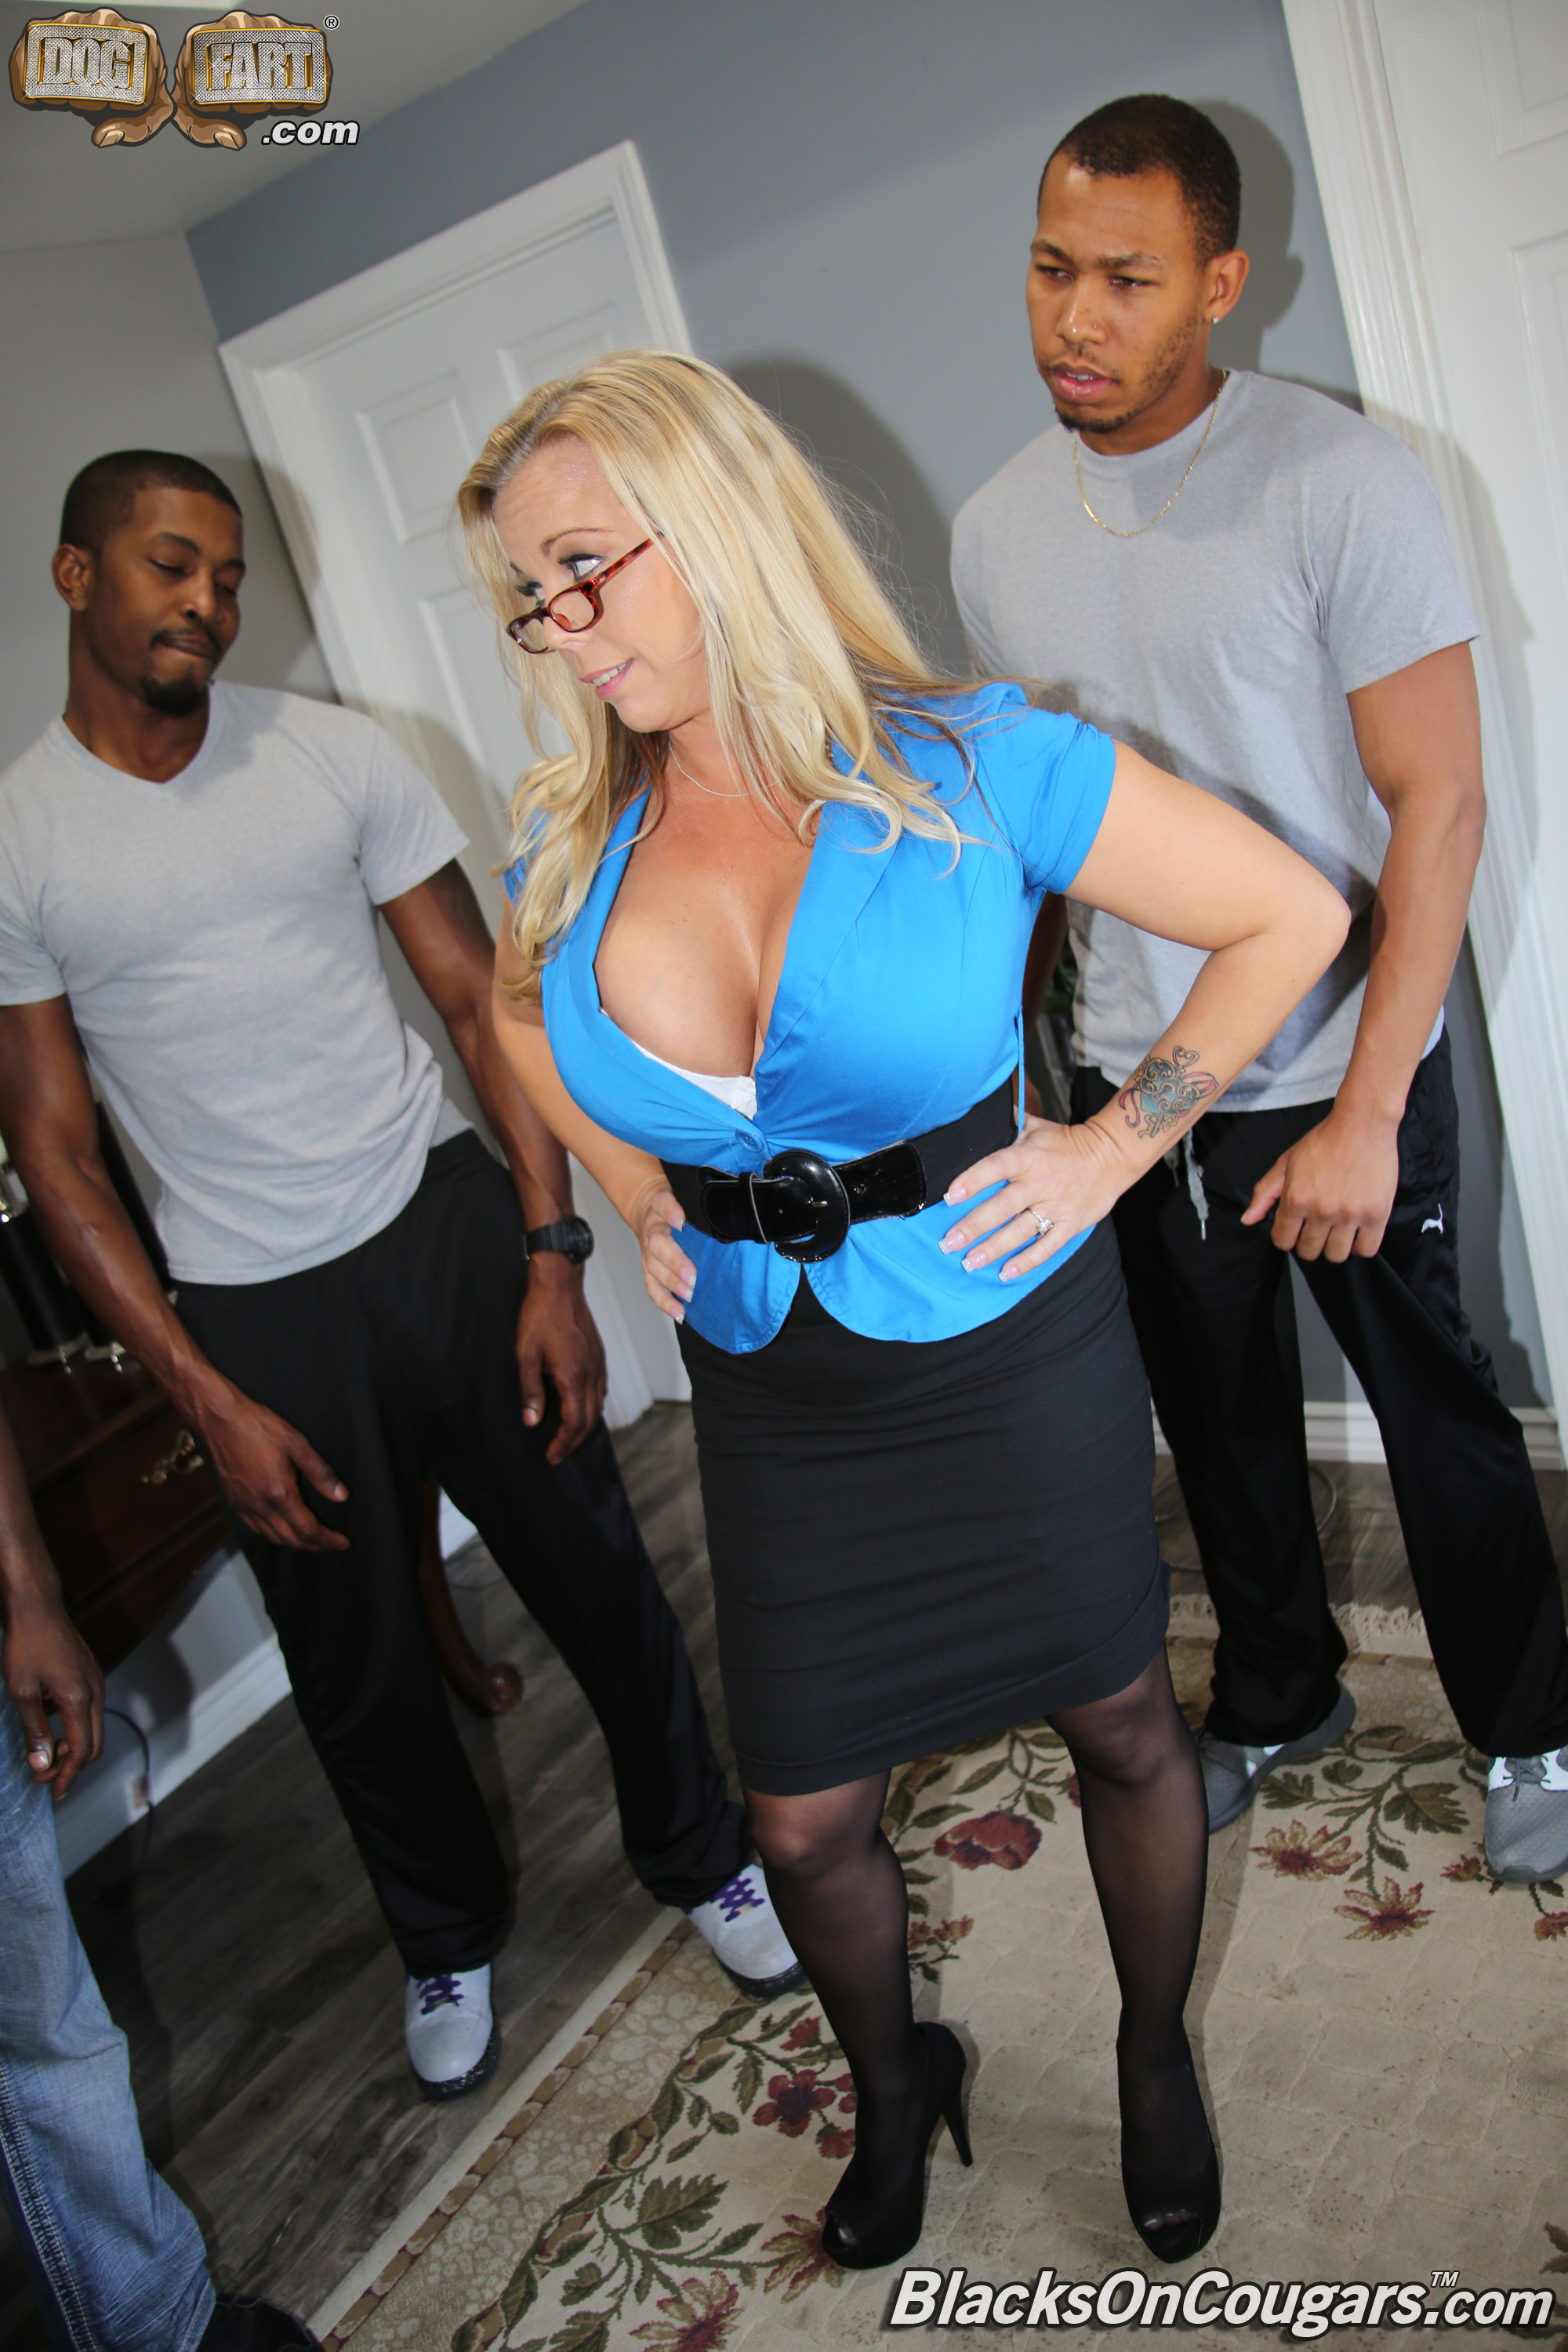 galleries blacksoncougars content amber lynn bach 2 pic 03